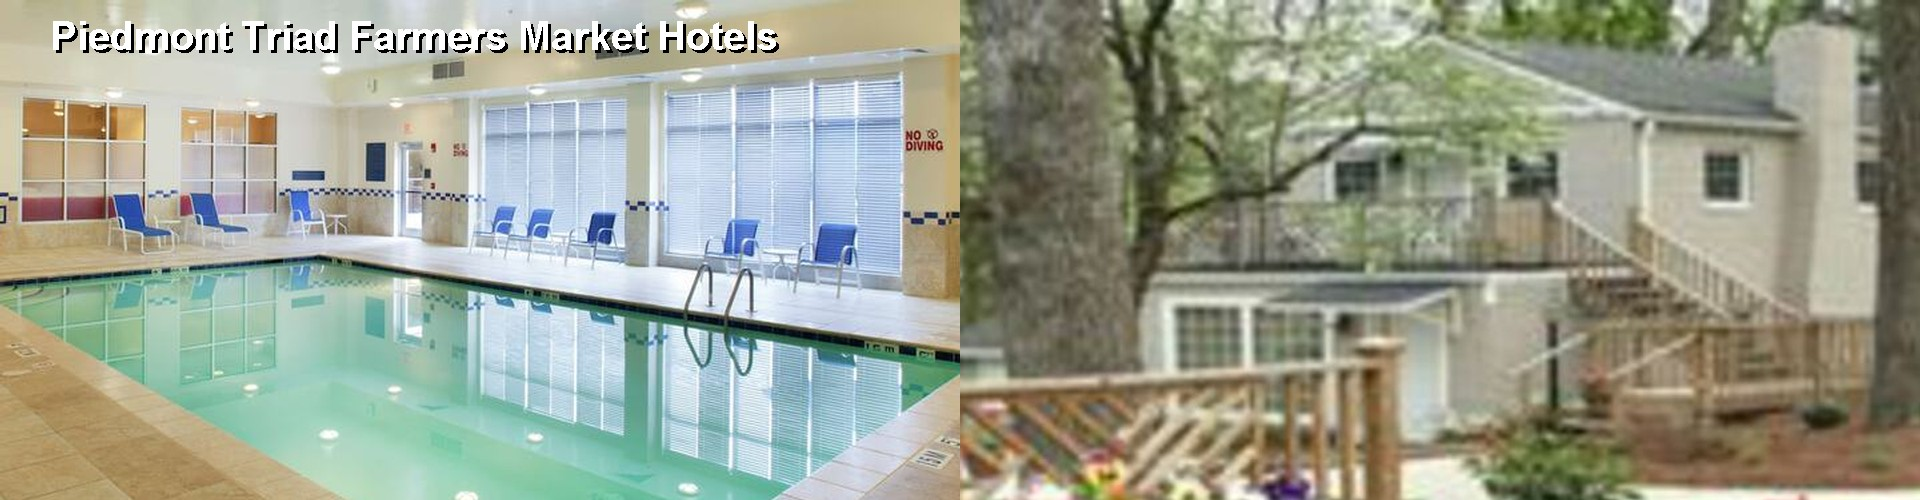 5 Best Hotels near Piedmont Triad Farmers Market